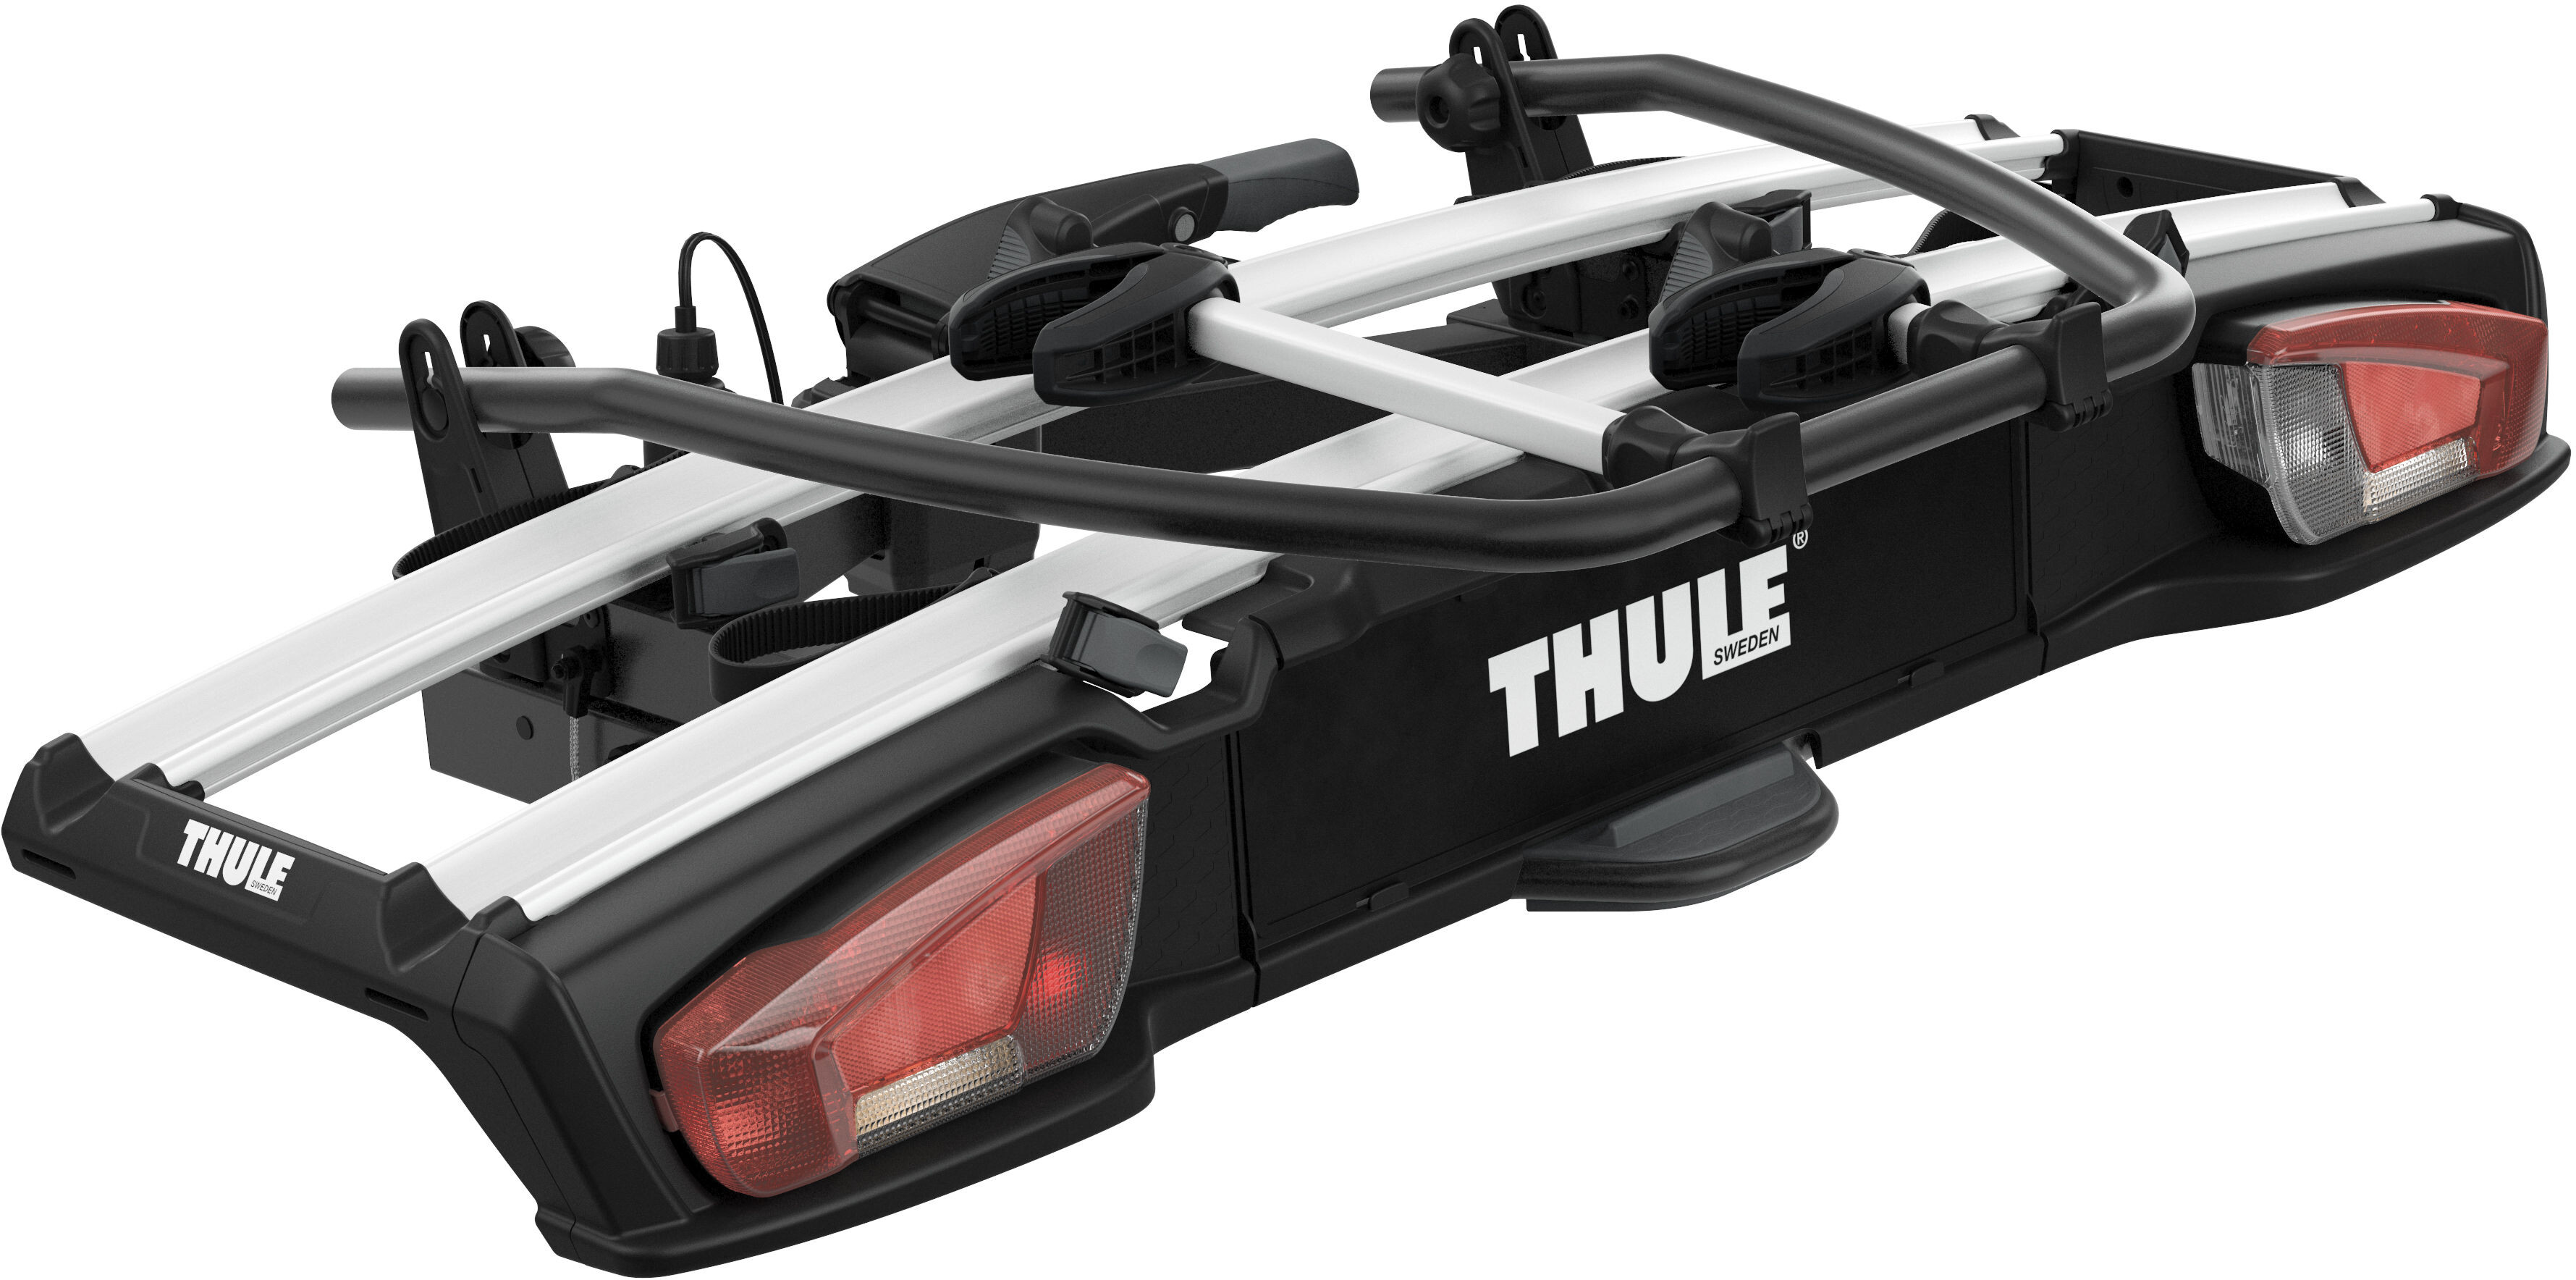 thule velospace xt fahrradtr ger f r 2 fahrr der online. Black Bedroom Furniture Sets. Home Design Ideas